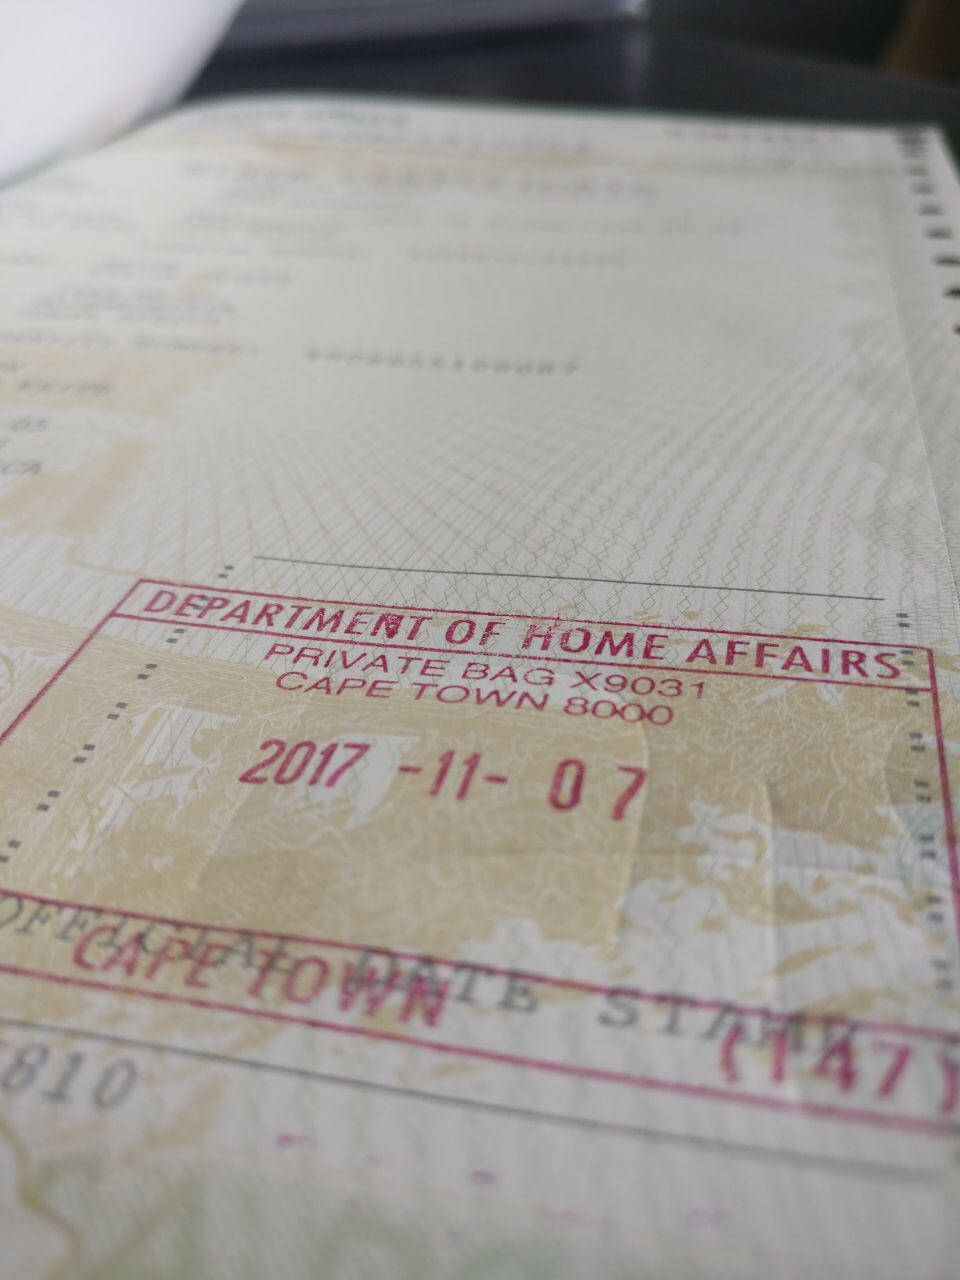 find south african death certificates